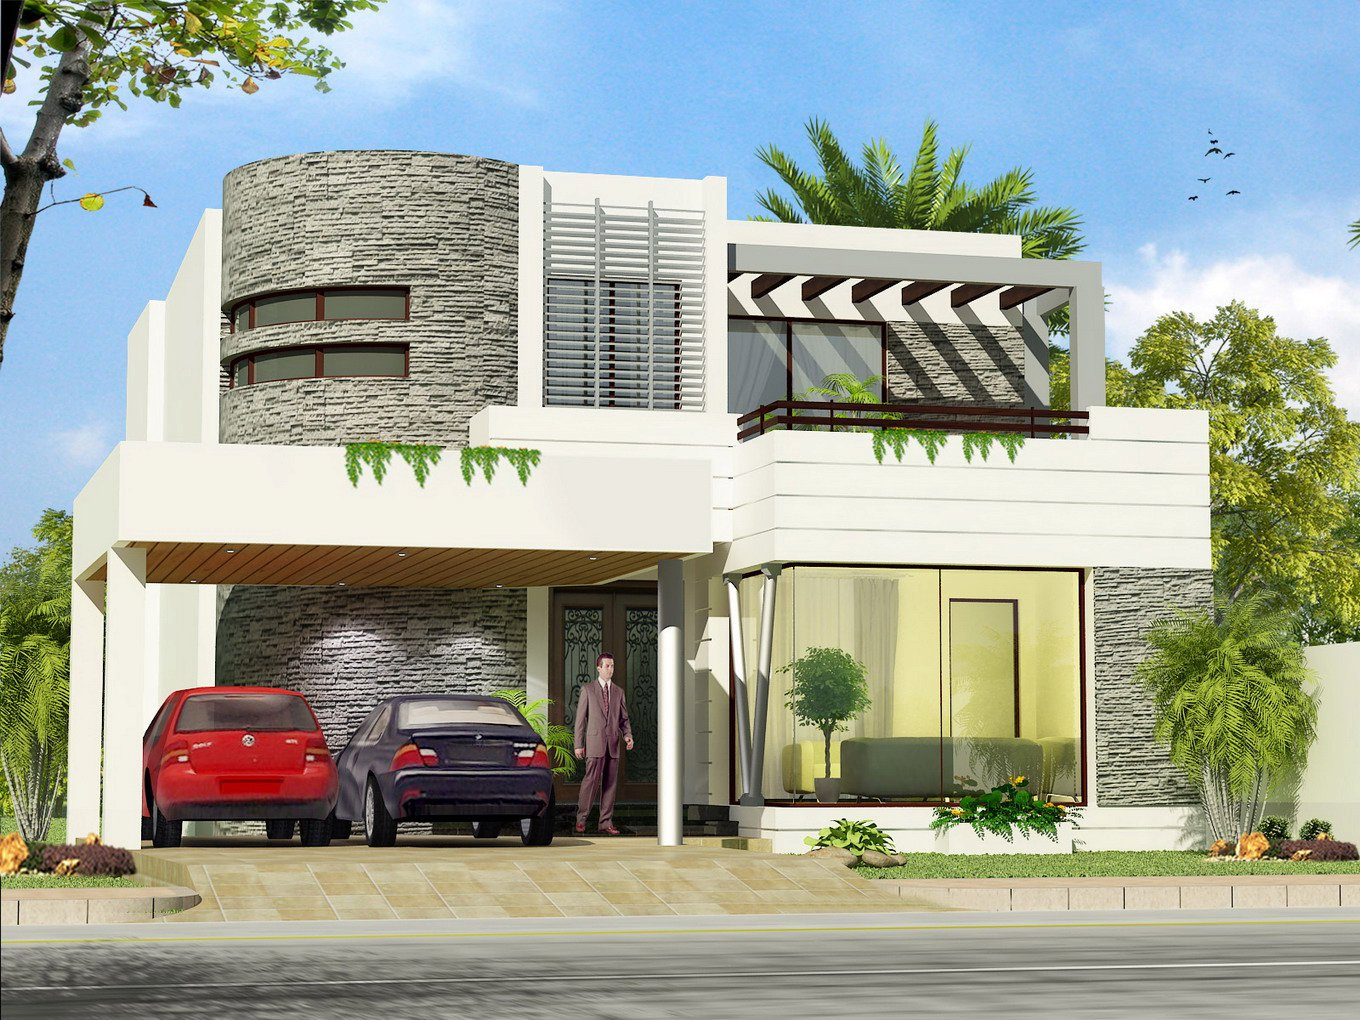 New home designs latest modern homes beautiful latest for Beautiful home designs photos